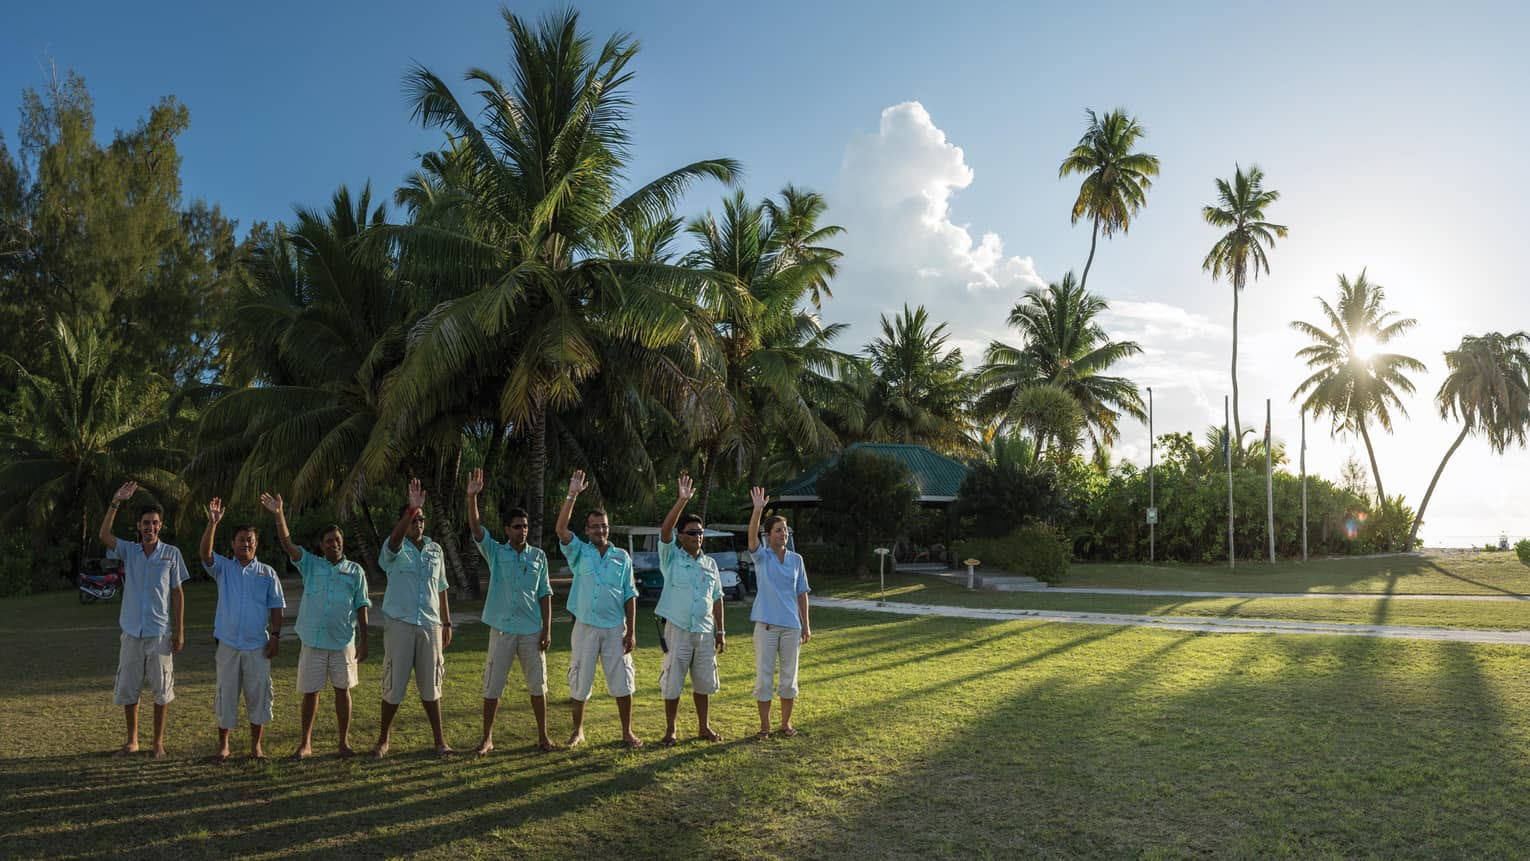 Row of 8 hotel staff in blue button-up shirts wave on green lawn, palm trees in background